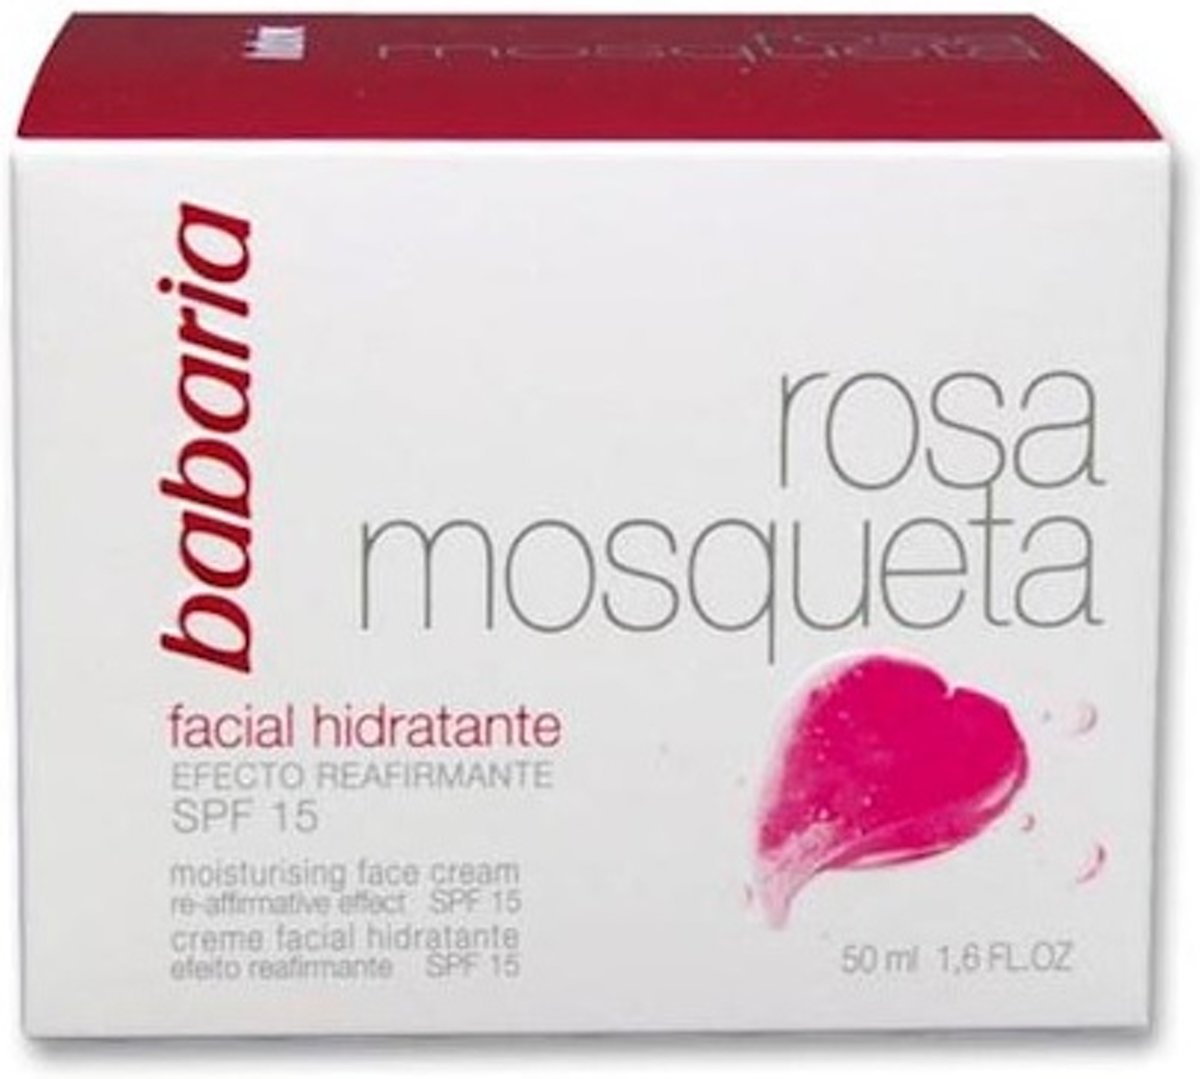 Babaria Face Cream 24 Hour Moisture Rose hip Oil Spf15 50ml